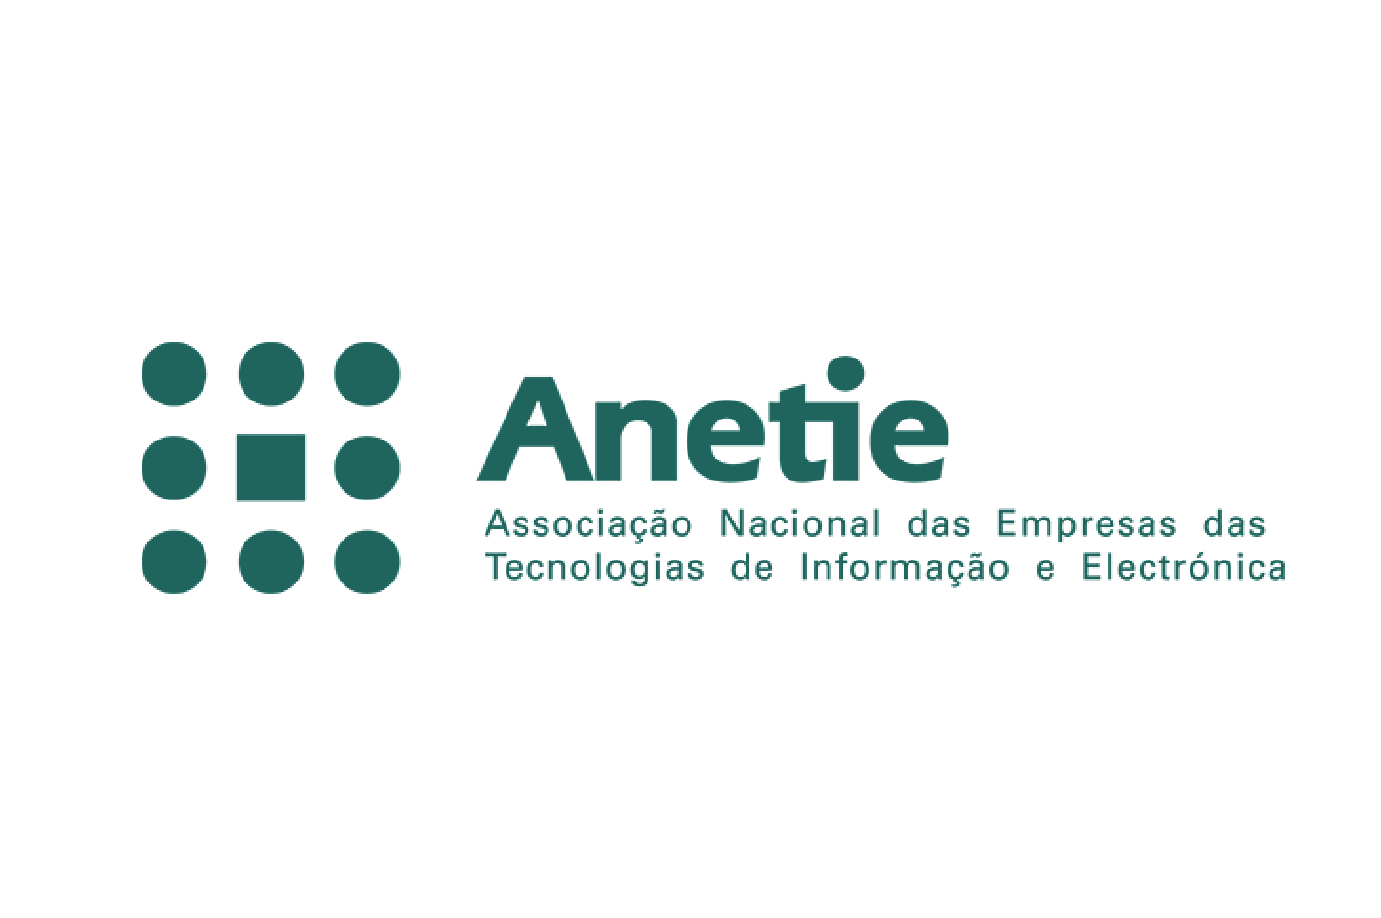 anetie